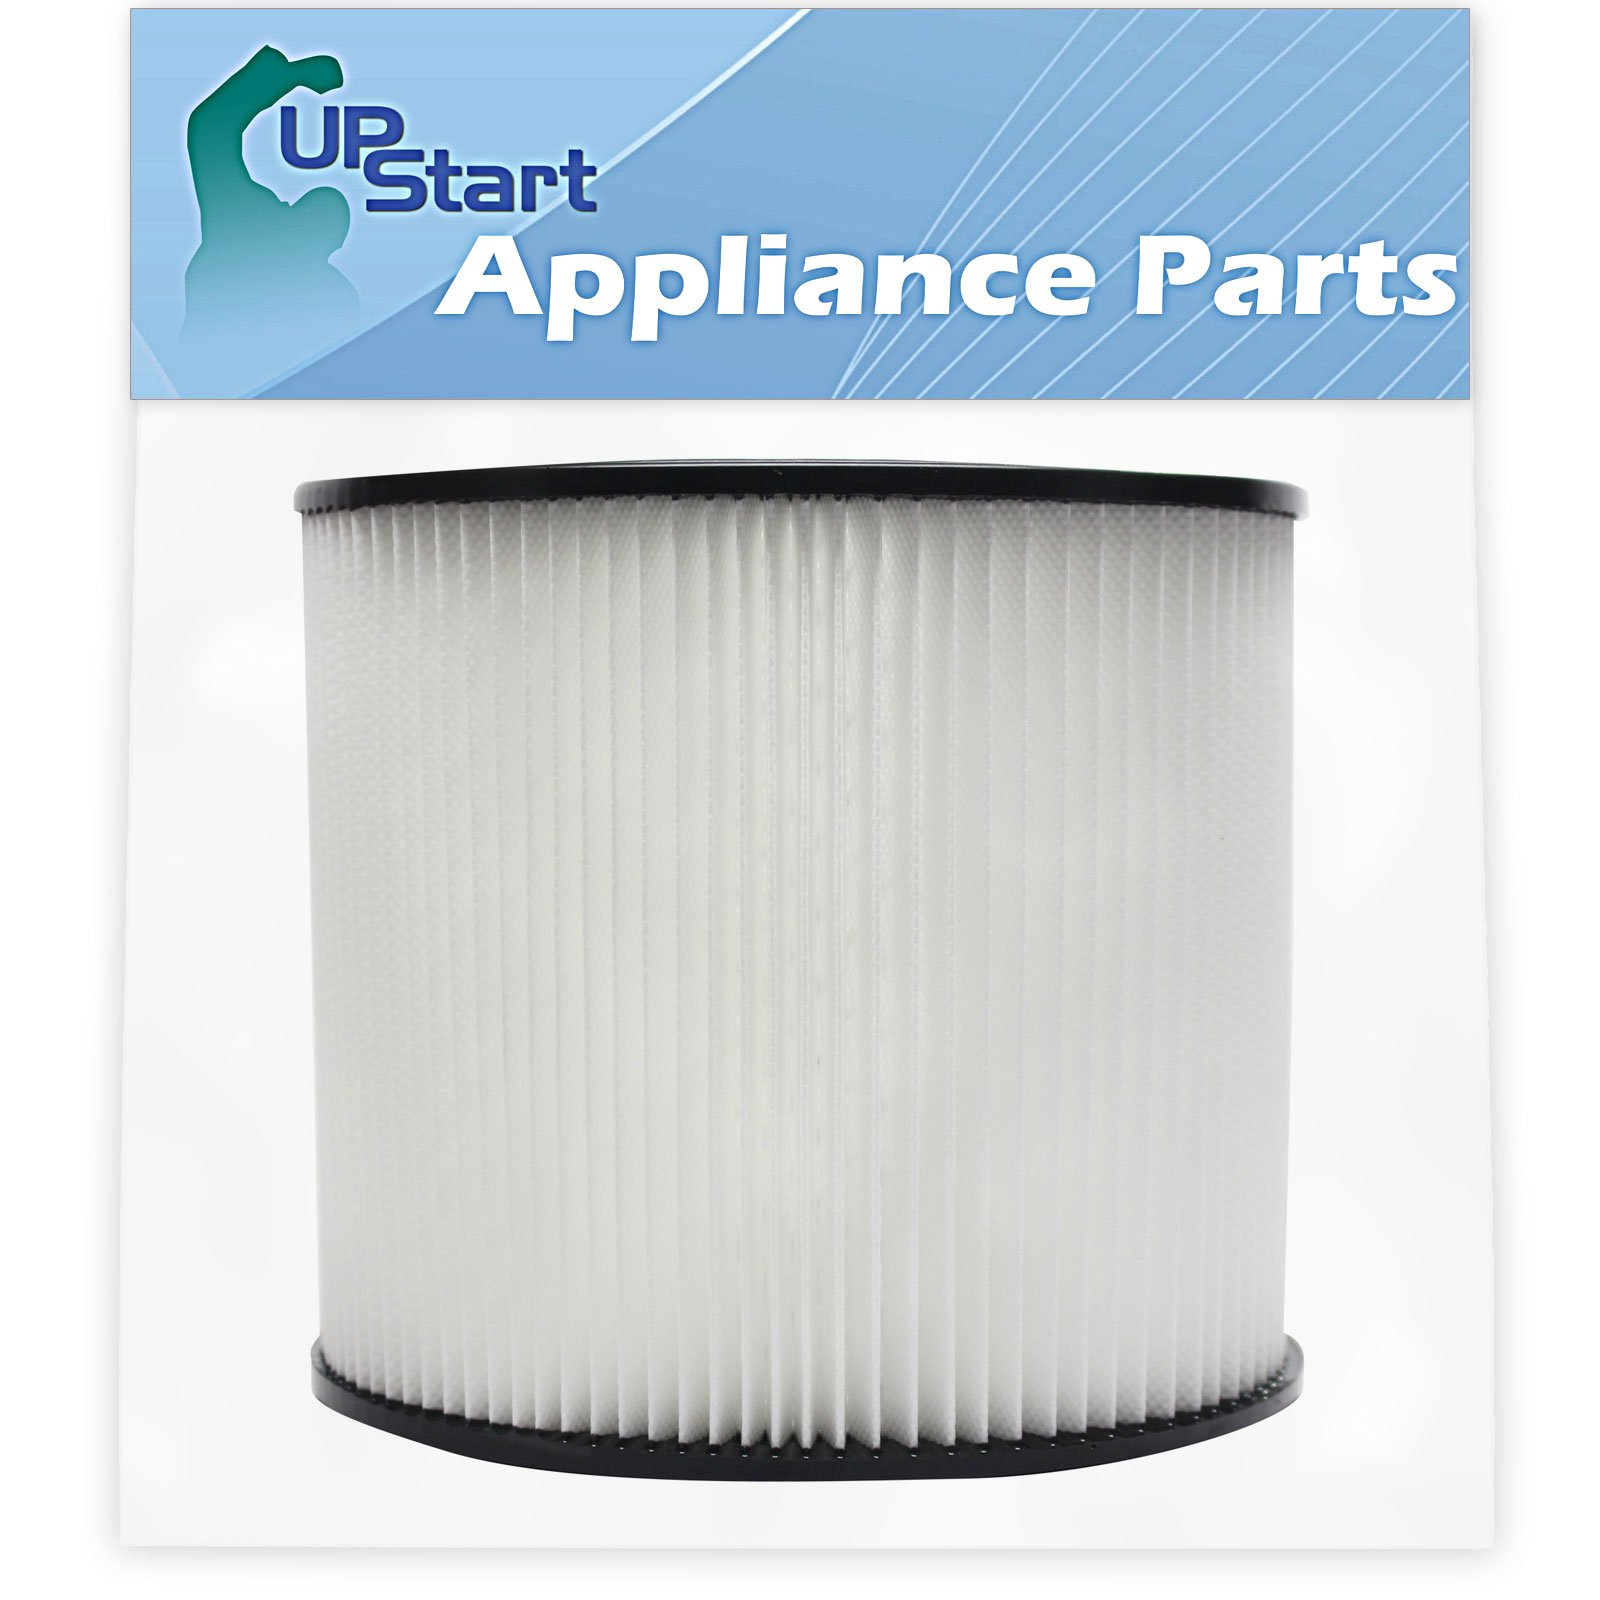 Replacement 90304 Filter for Shop-Vac - Compatible with Shop-Vac 90304, Shop-Vac LB650C, Shop-Vac QPL650, Shop-Vac 965-06-00, Shop-Vac CH87-650C, Shop-Vac SL14-300A, Shop-Vac 925-29-10, Shop-Vac 963-12-00, Shop-Vac 596-07-00, Shop-Vac 586-74-00, Shop-Vac 586-75-00, Shop-Vac 586-76-00